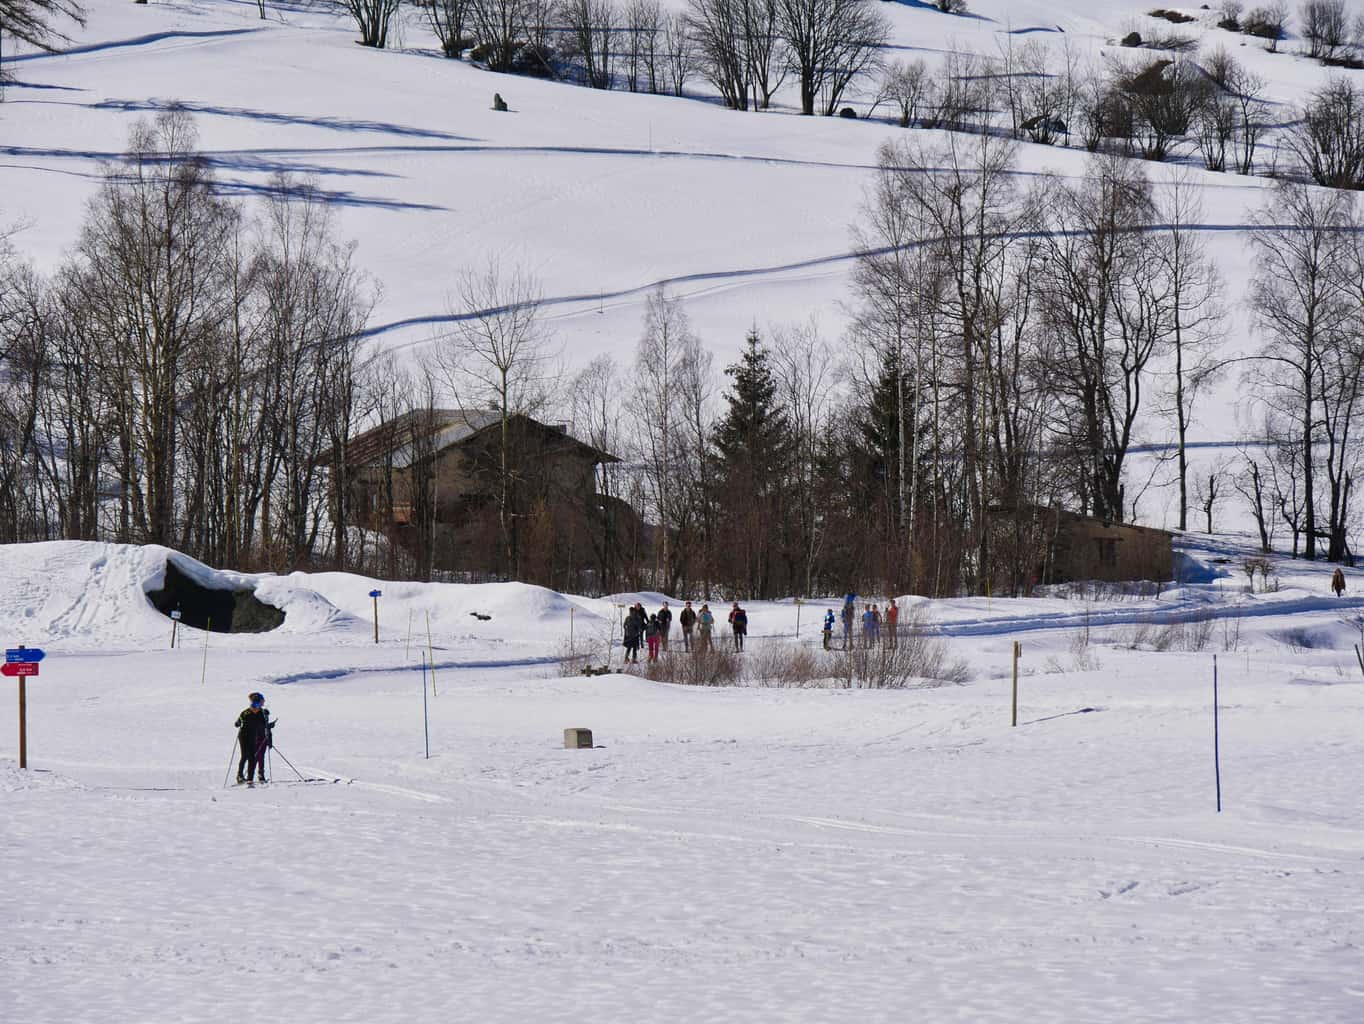 Nordic Ski Area in Peisey-Nancroix covered in snow with people skiing and walking